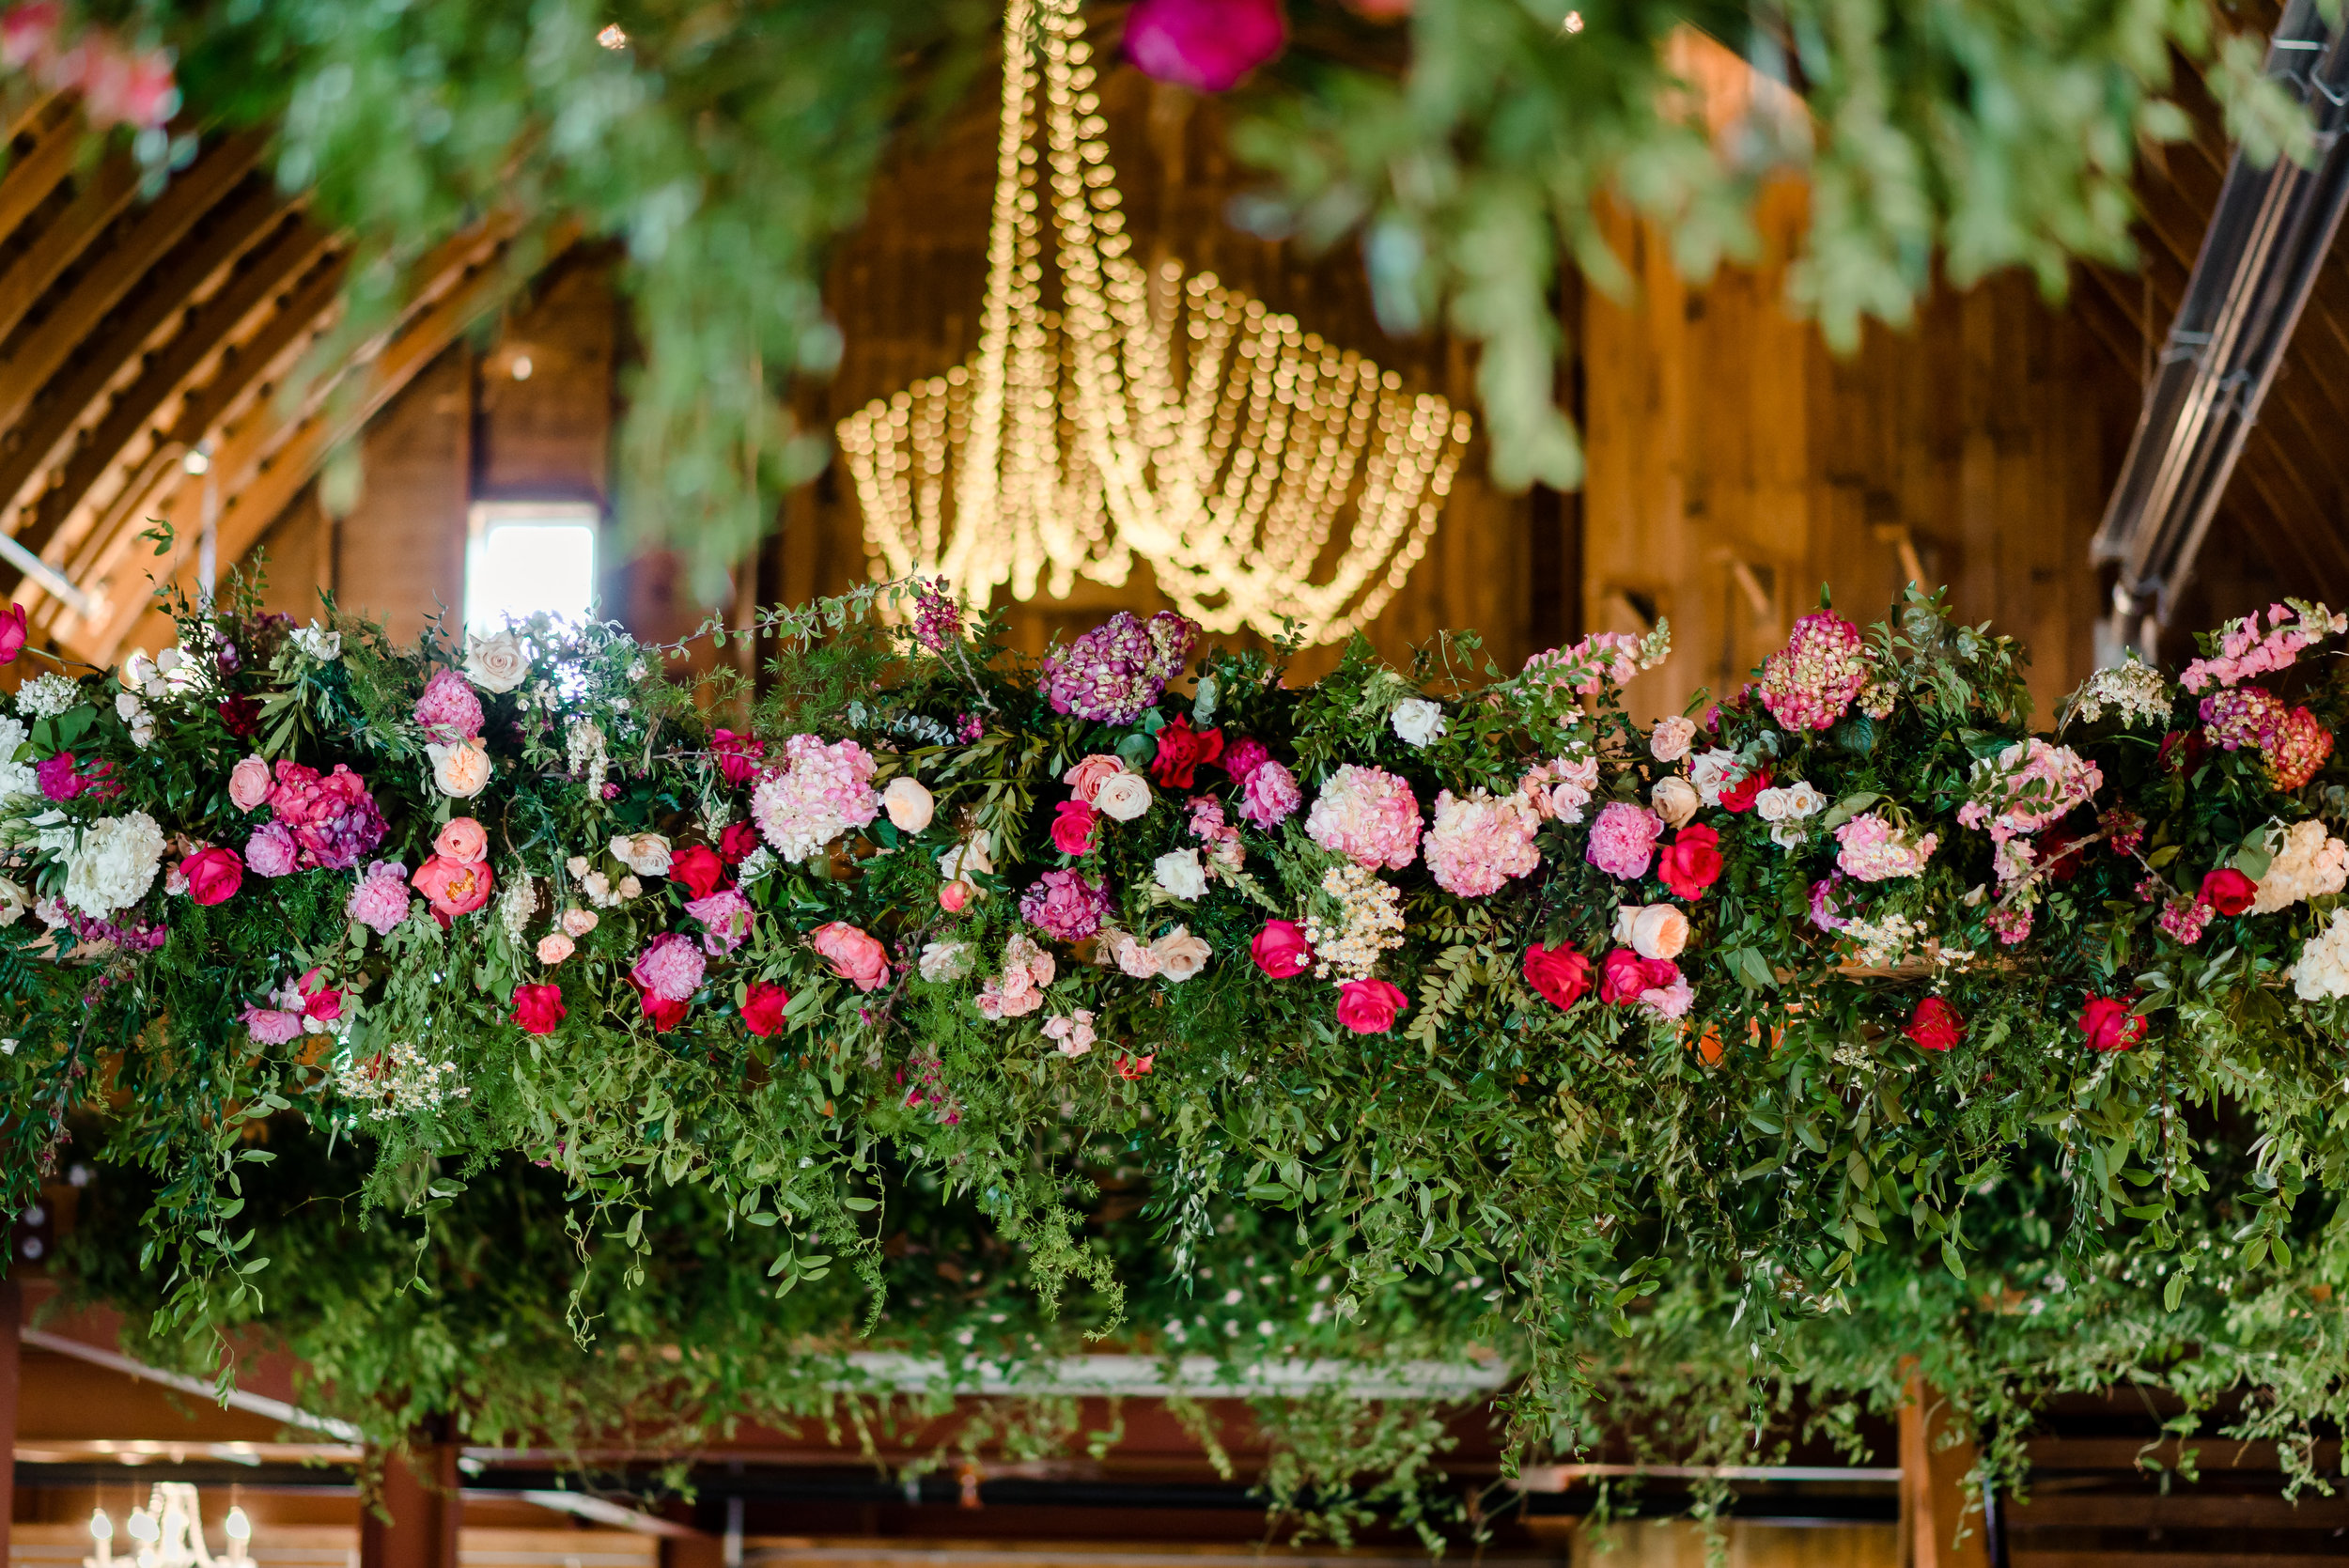 Munster Rose Reception Decor at Historic John P Furber Farm Wedding in Cottage Grove, MN - Best MN Wedding Photographer